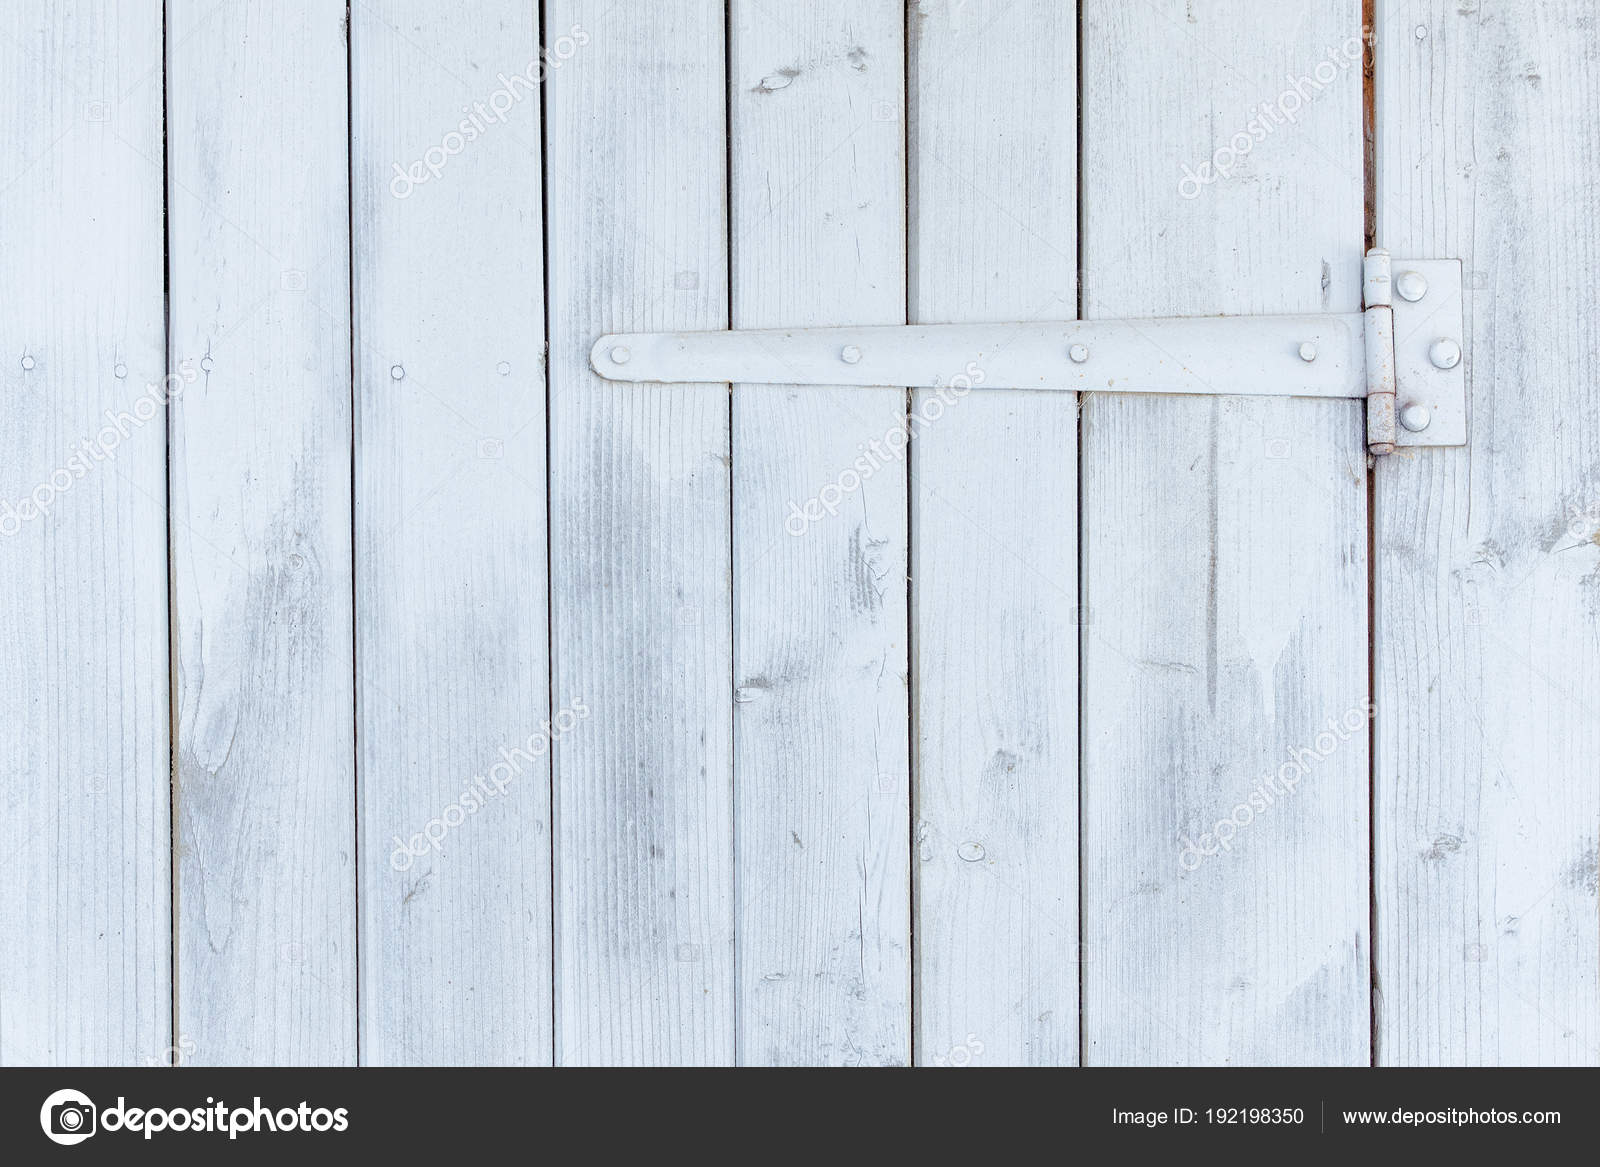 Part Of The White Wooden Door With Hinges Stock Photo